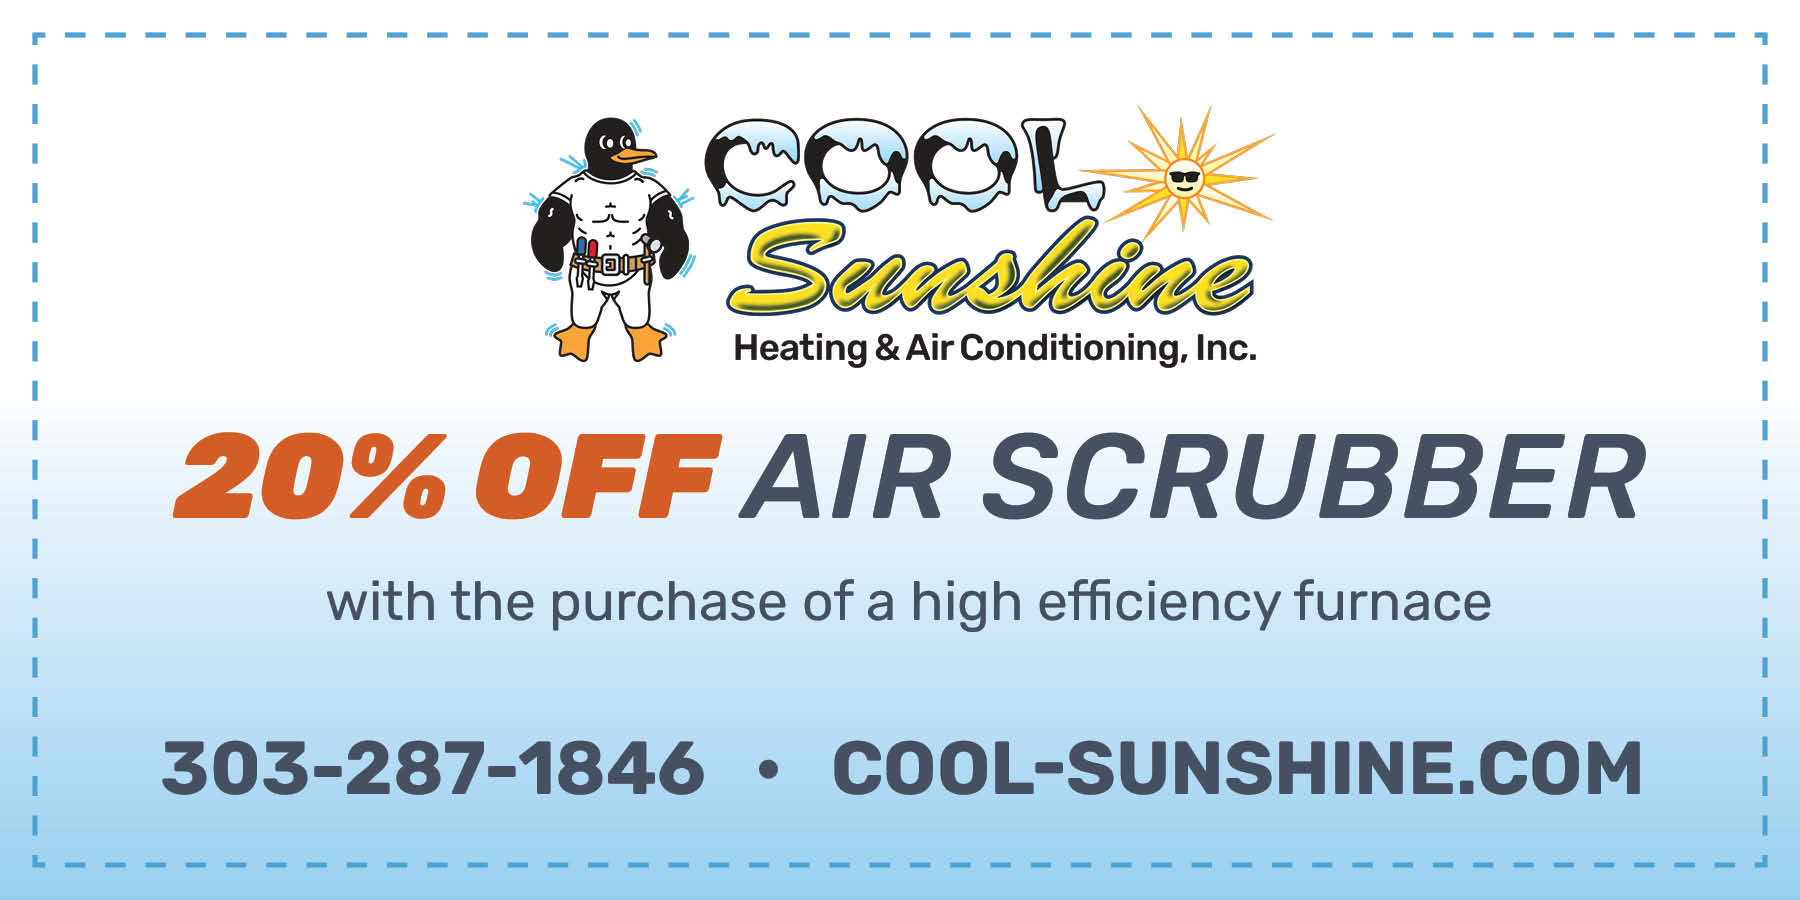 Cool Sunshine Air Scrubber special